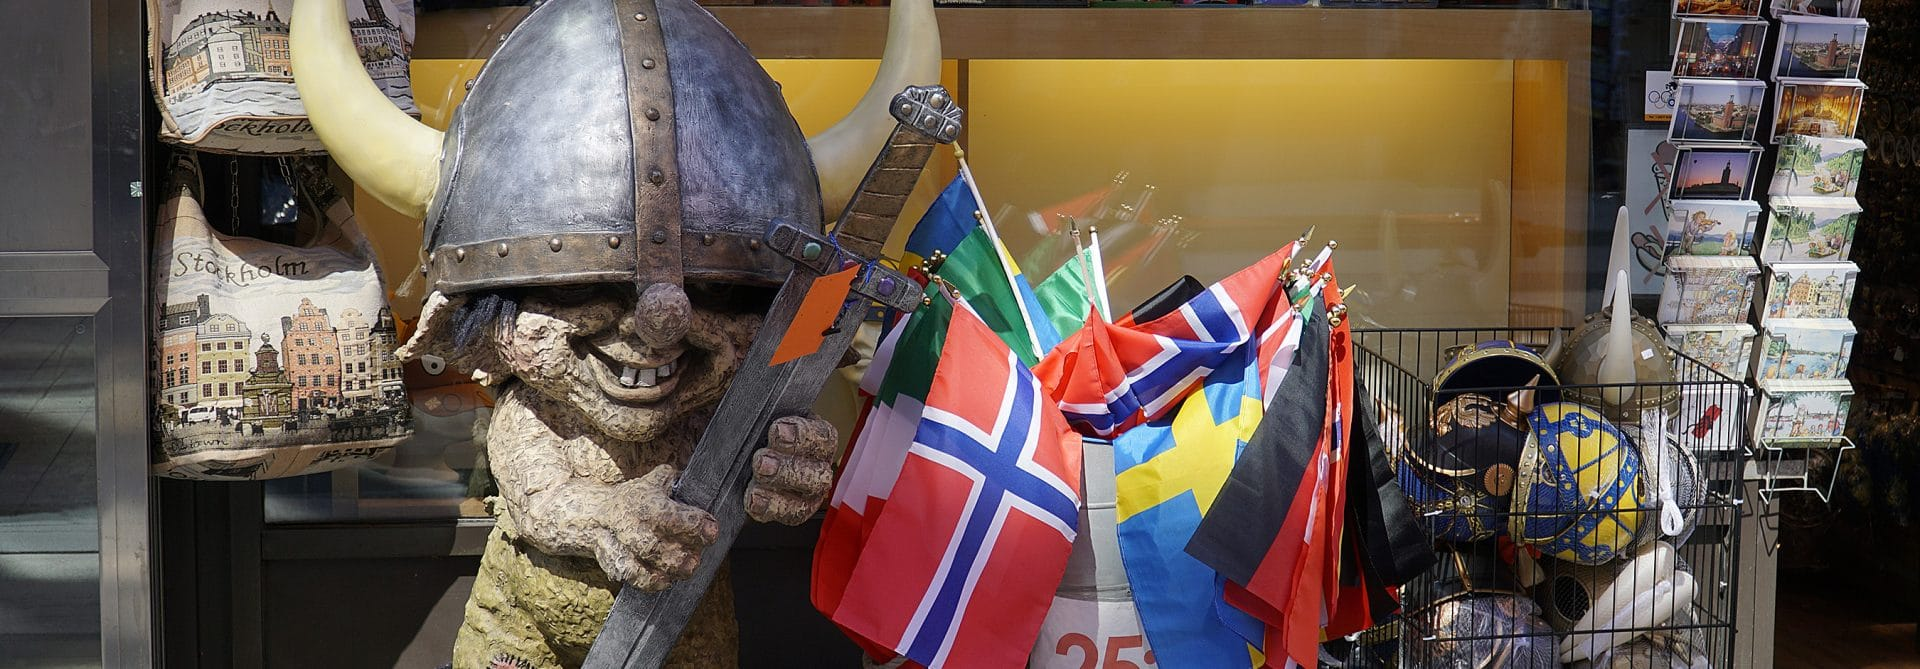 Vikings! - Sweden